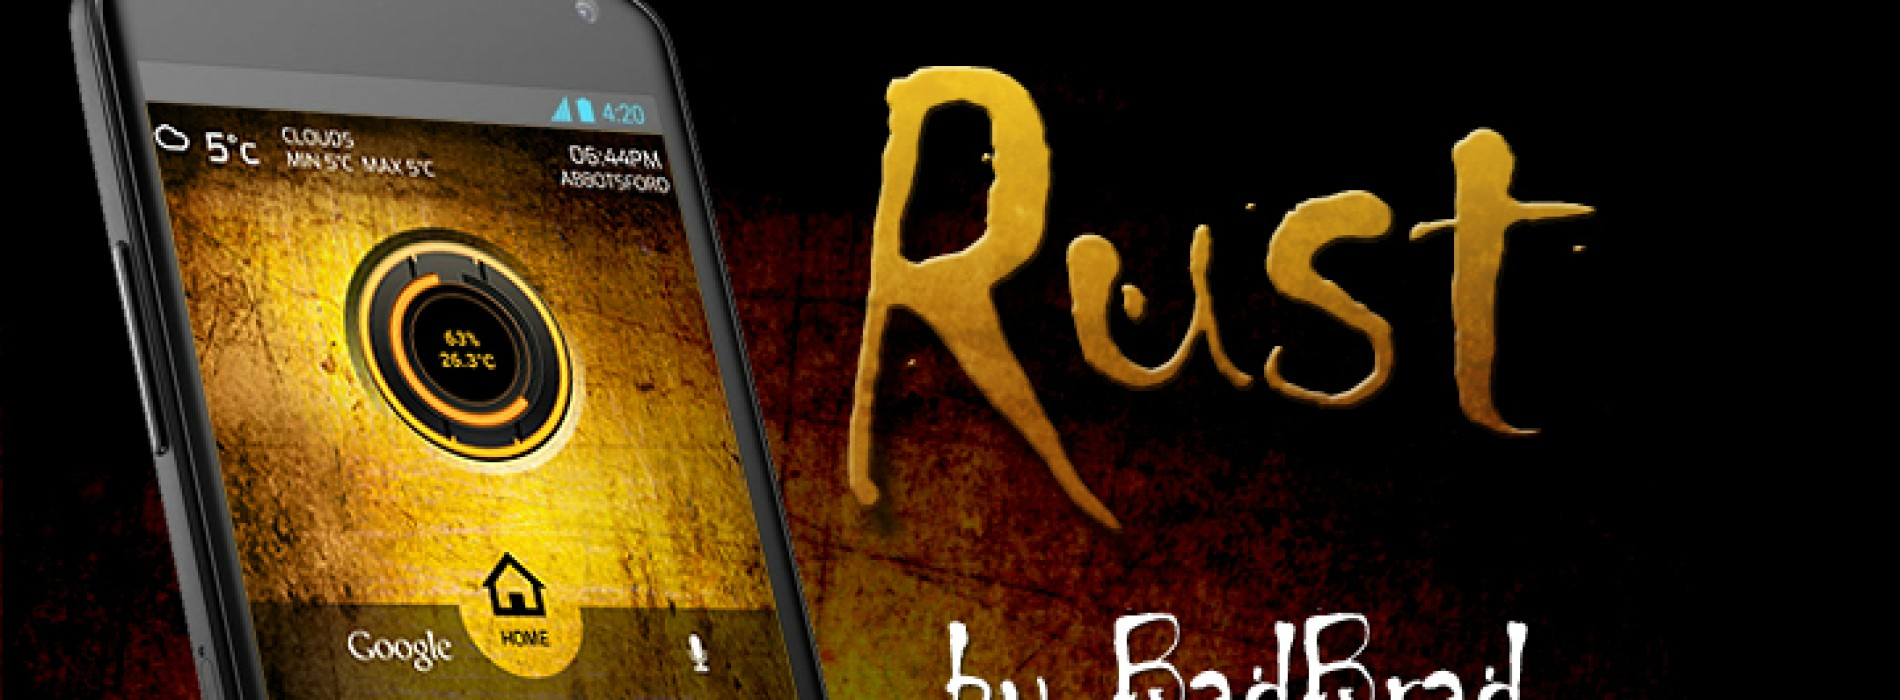 Get this look for your Android: Rust